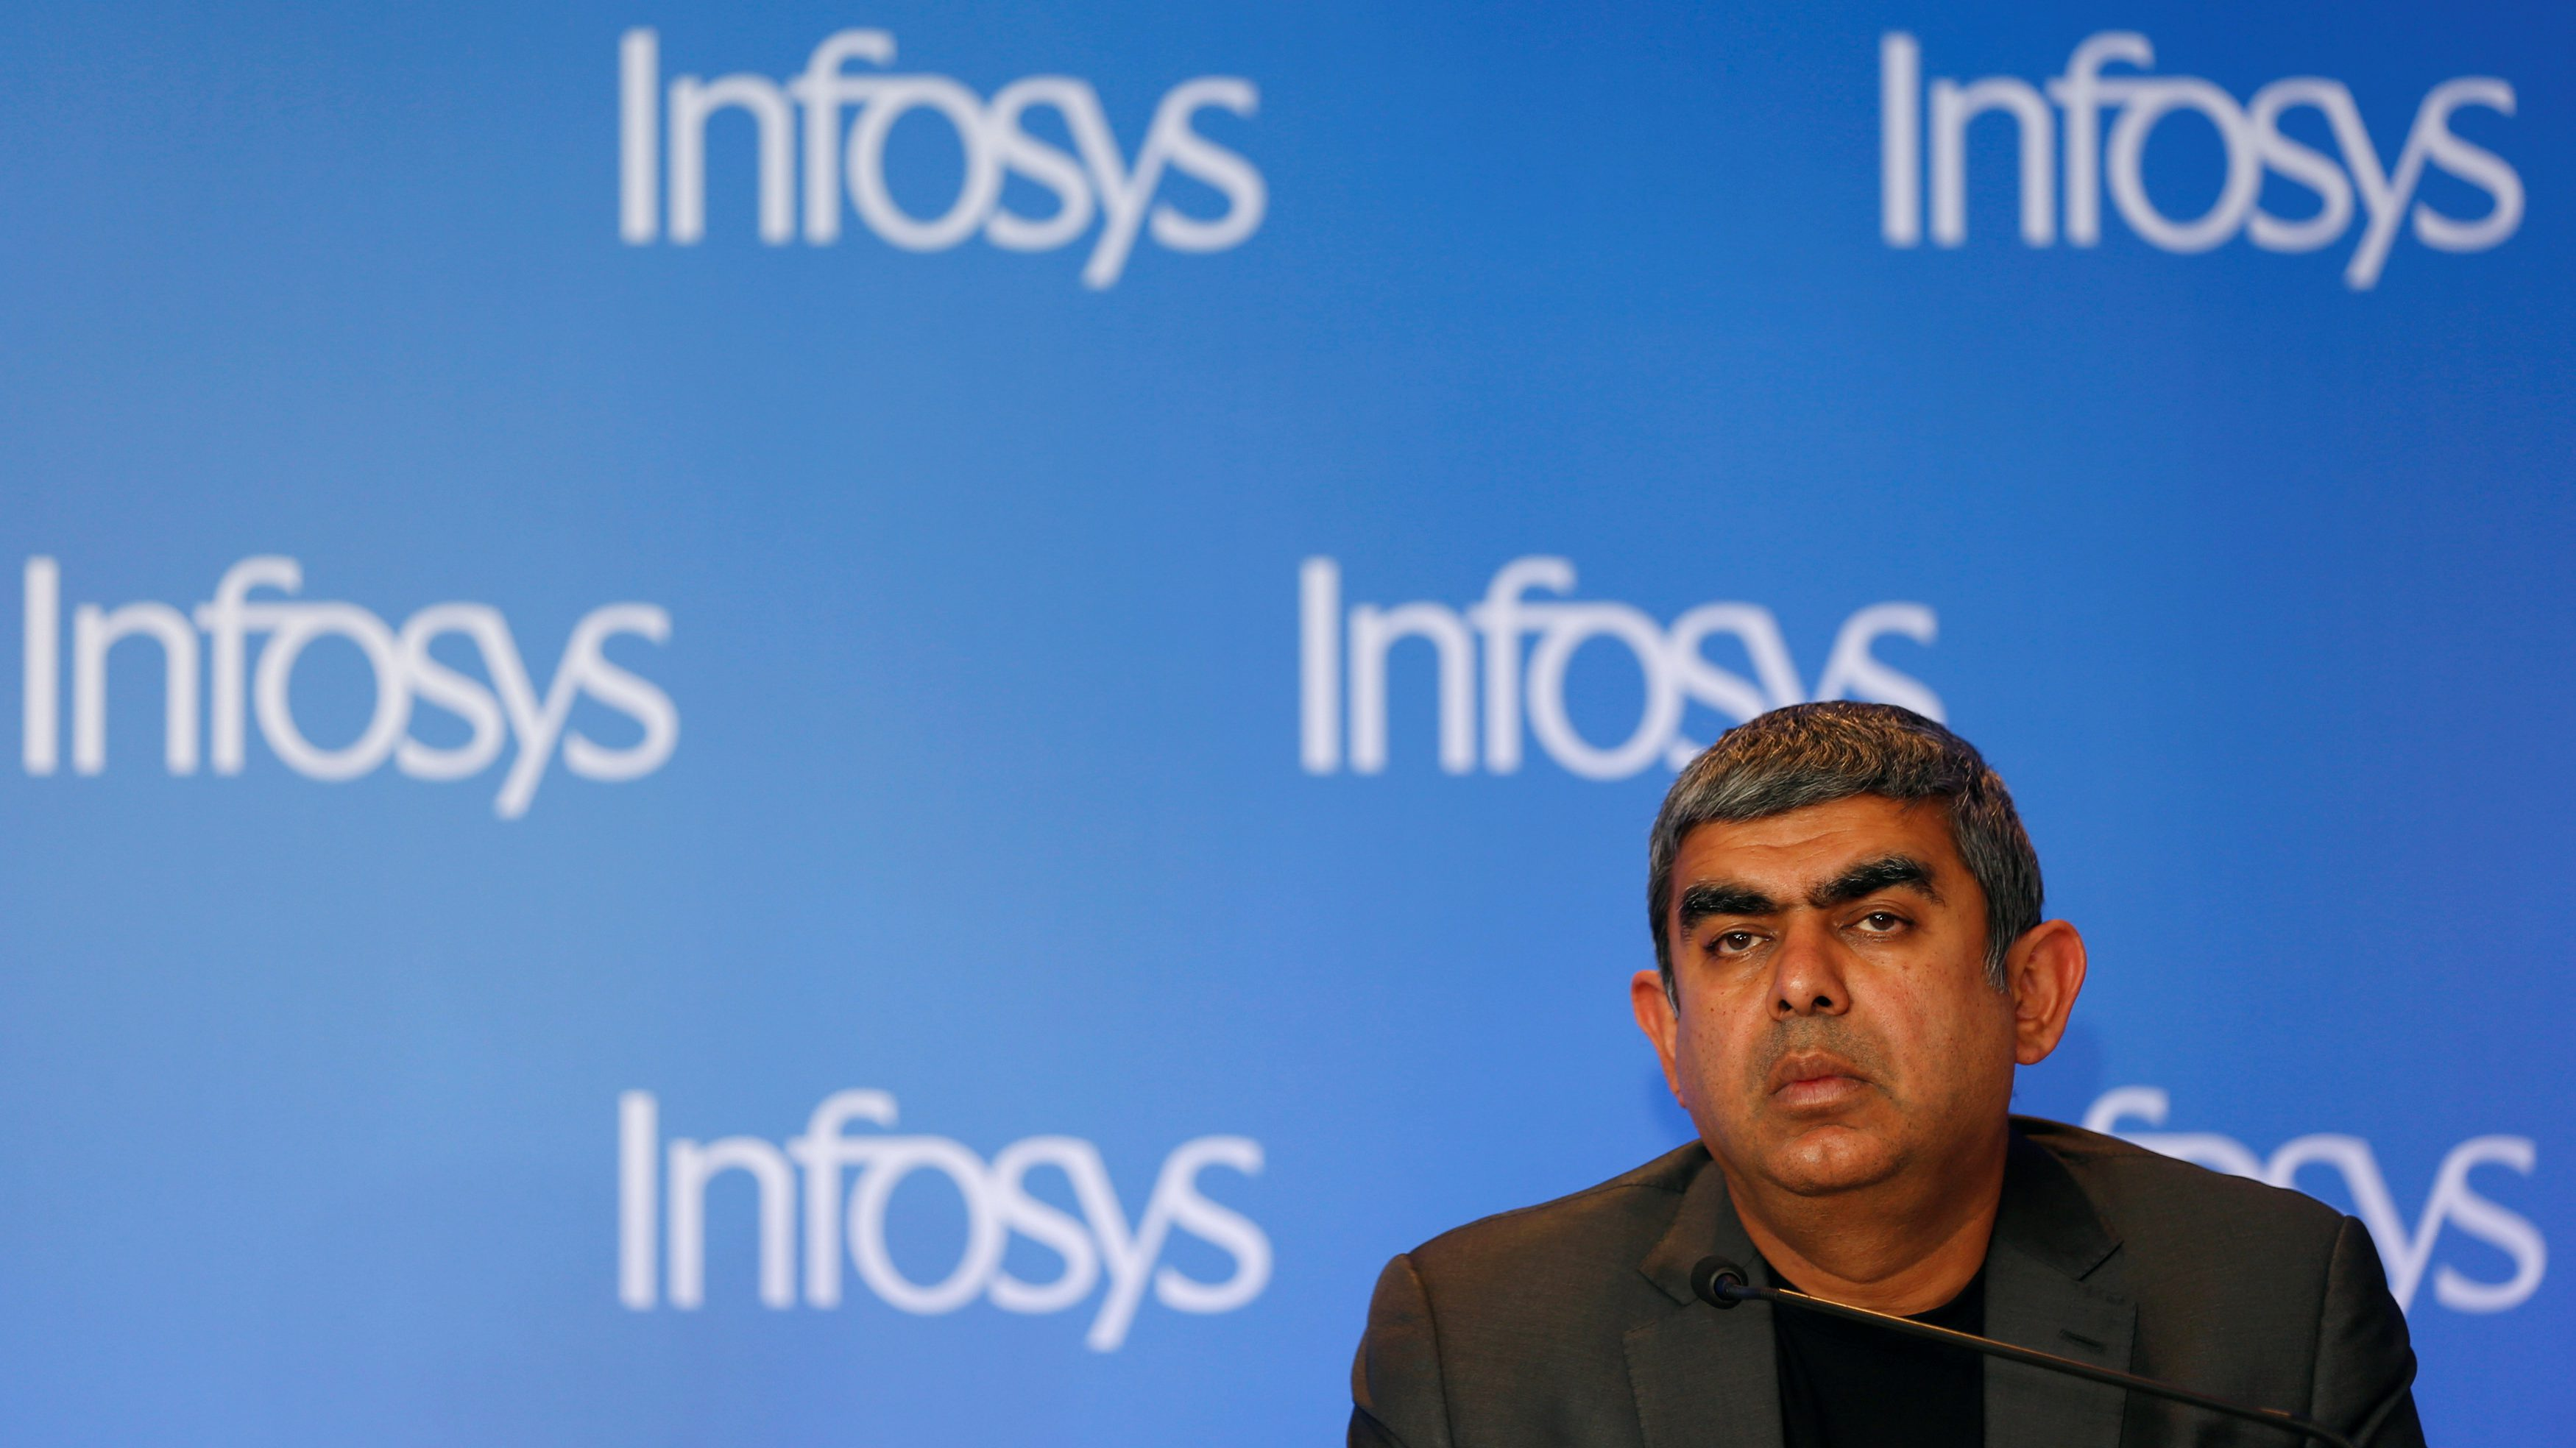 Infosys Chief Executive Vishal Sikka attends a news conference in Mumbai